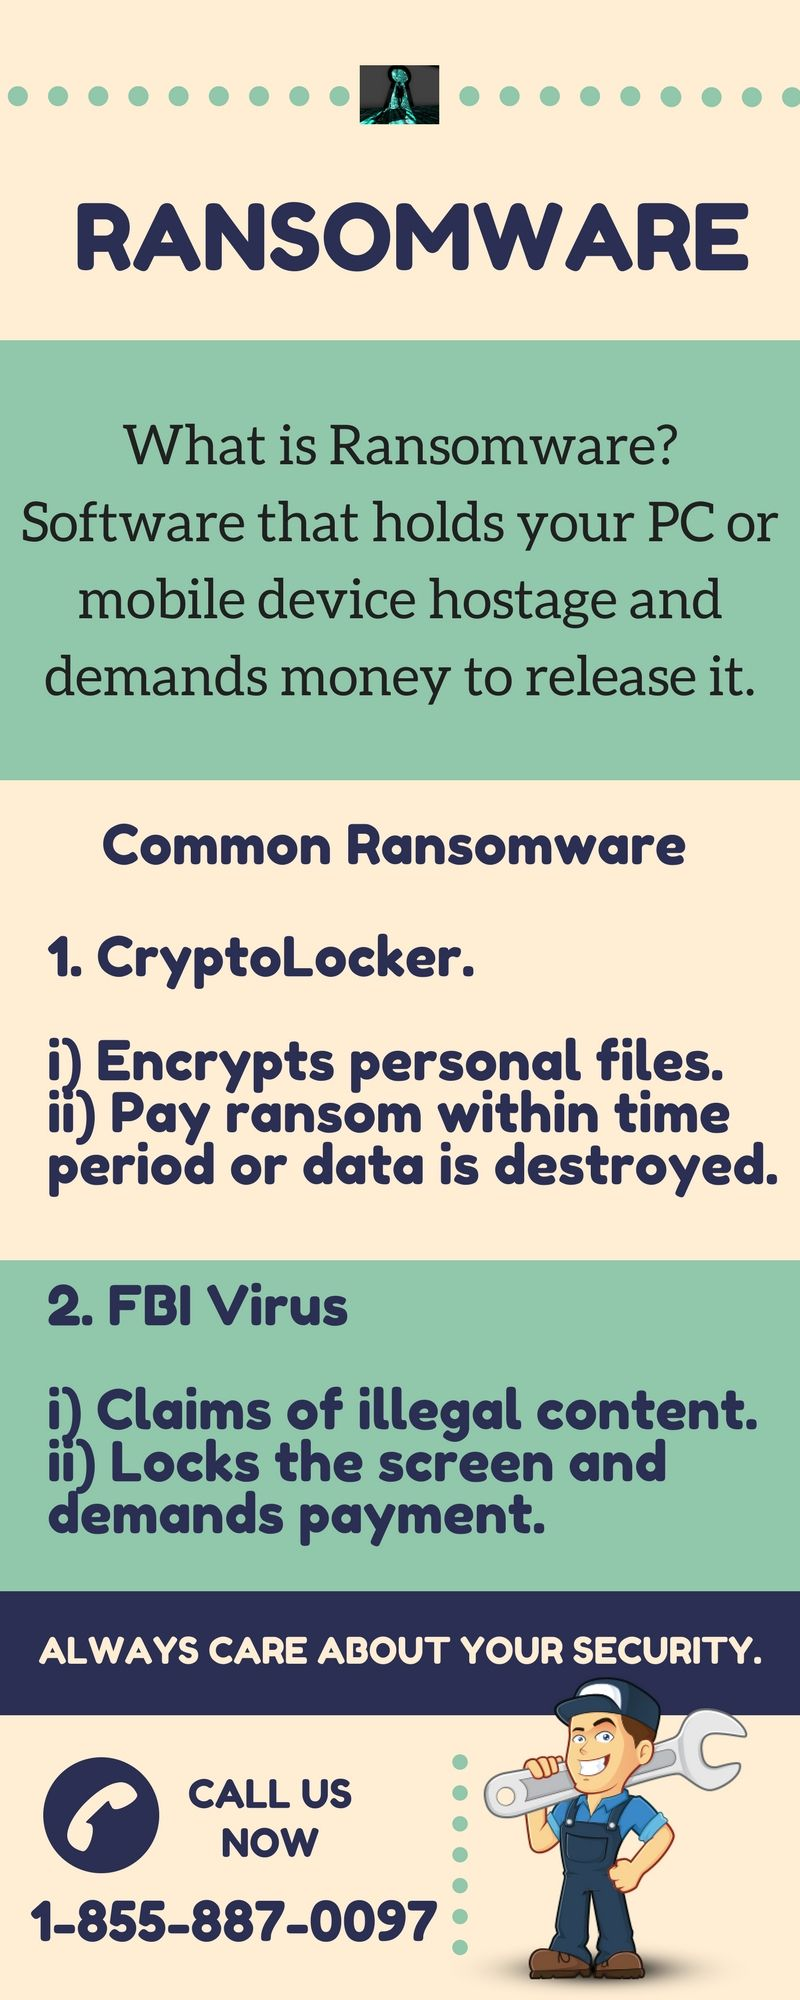 You should know about Ransomware. Keep your PC and